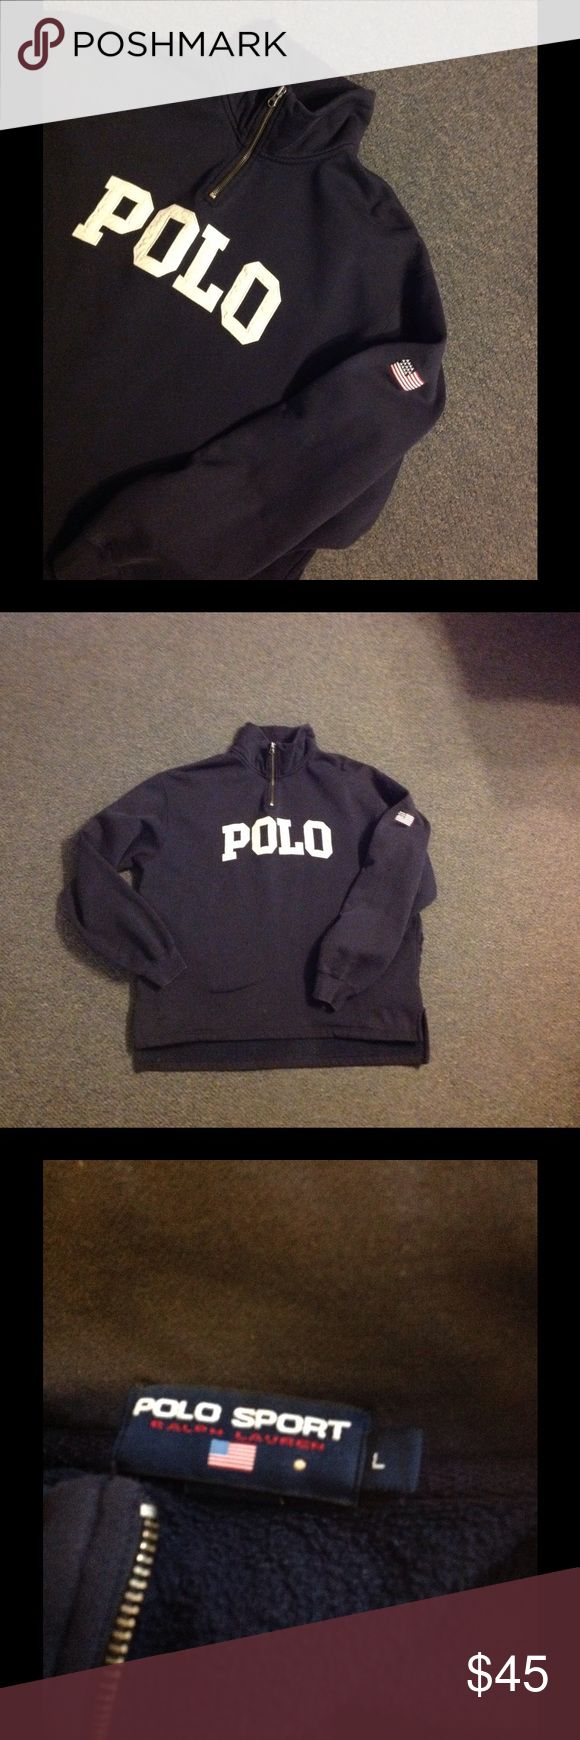 Vintage Polo Sport 1/4 Zip Sweatshirt Jacket L Very nice vintage RL Polo Sport sweatshirt. Spells POLO with a flag on the sleeve. Has side pockets towards the bottom. This is in pretty good shape. There are a couple light marks that I tried to get in the last picture. Size Large. Polo by Ralph Lauren Shirts Sweatshirts & Hoodies